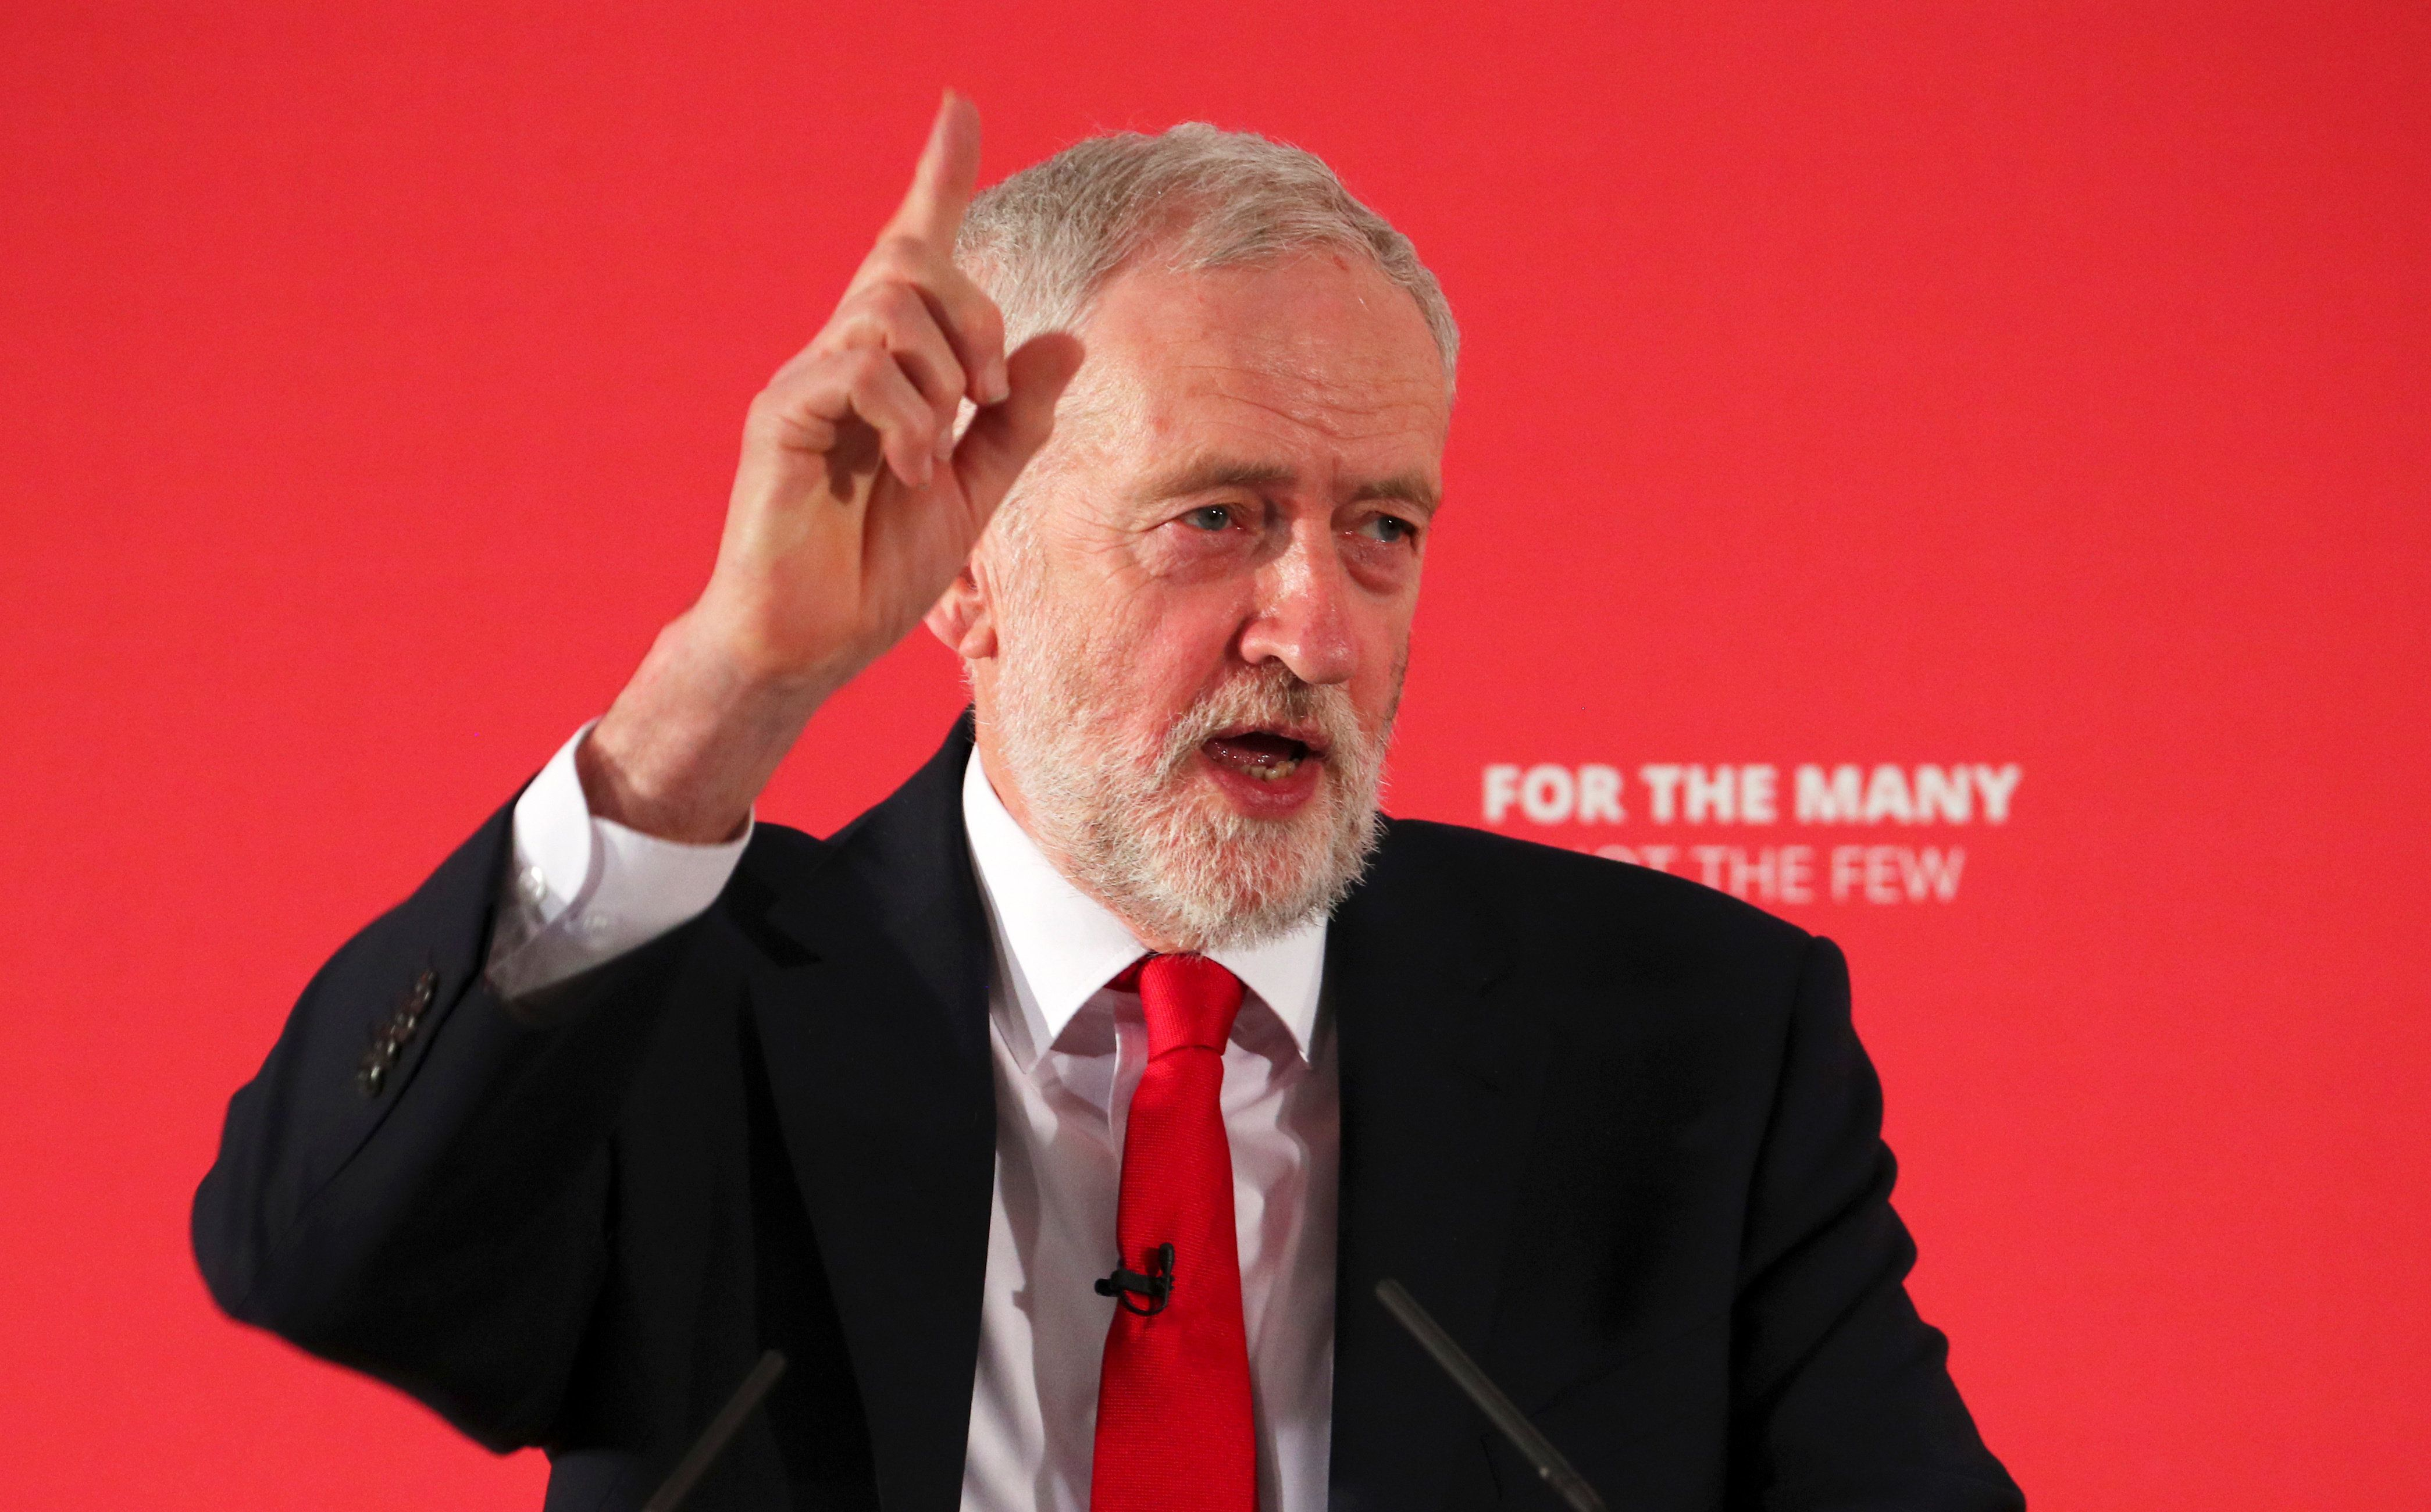 Jeremy Corbyn, the leader of Britain's Labor Party, speaks at the launch ofa local election campaign, in London.